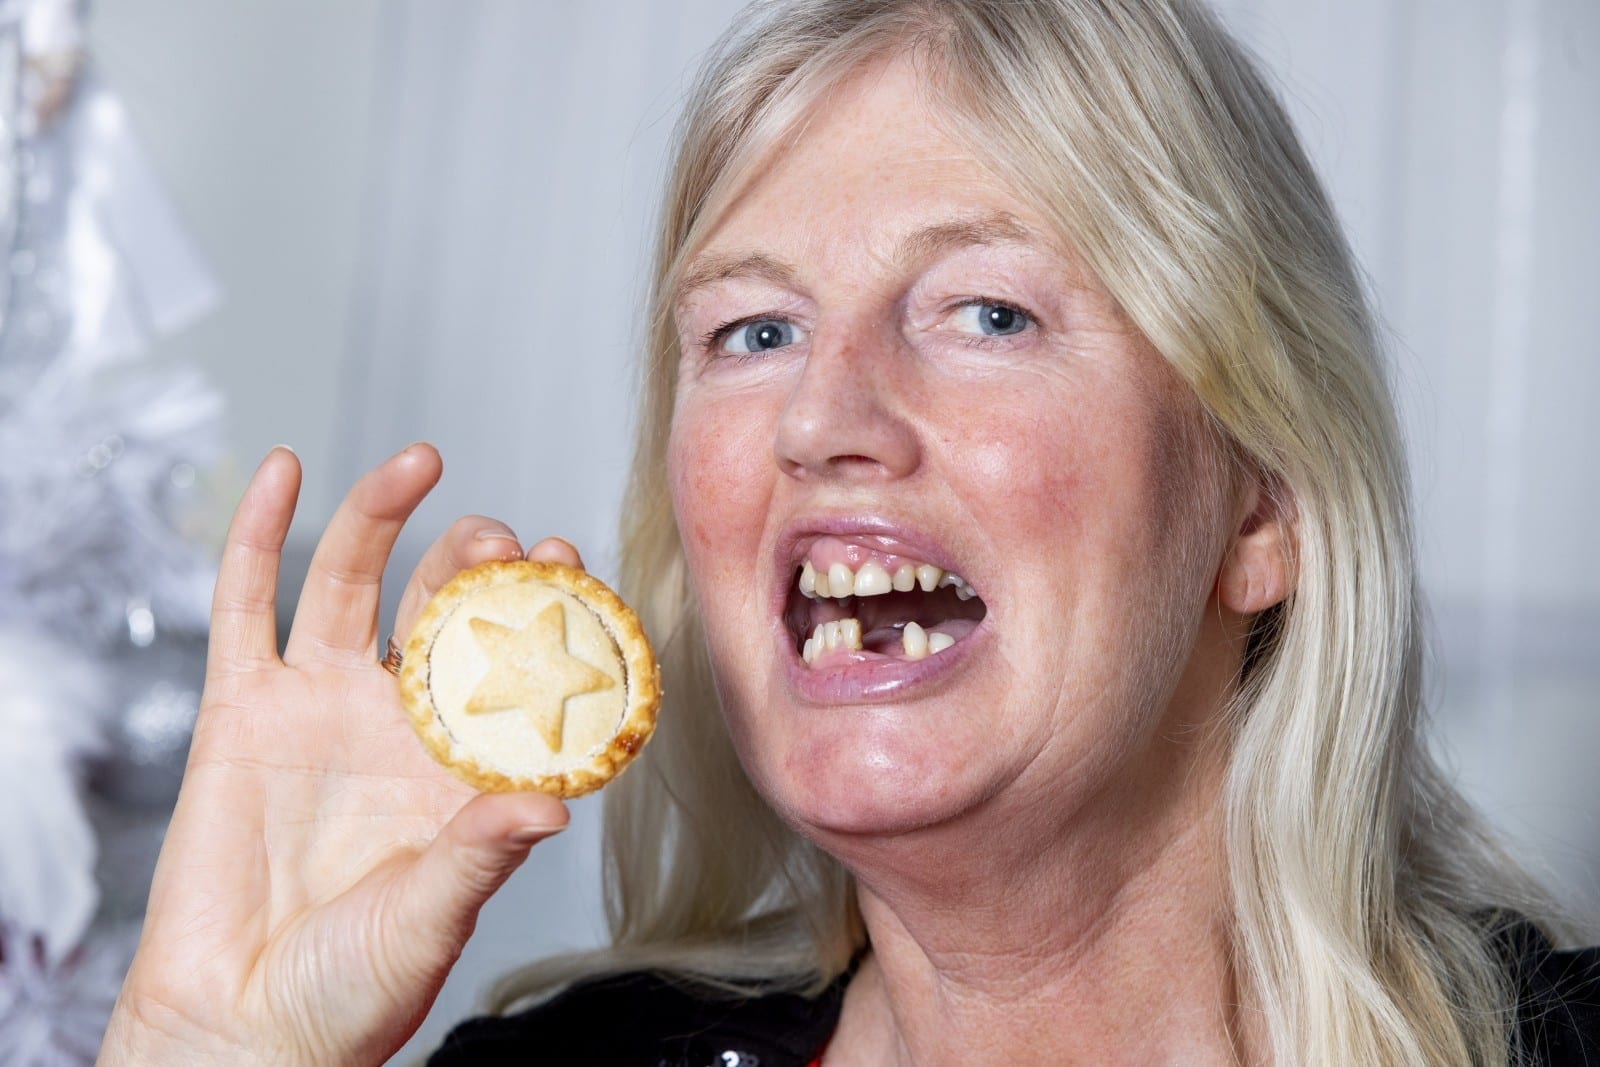 'All I Wants For Christmas Is My Two Front Teeth' – Mum Accidentally Swallowed Her Dentures While Eating A Mince Pie